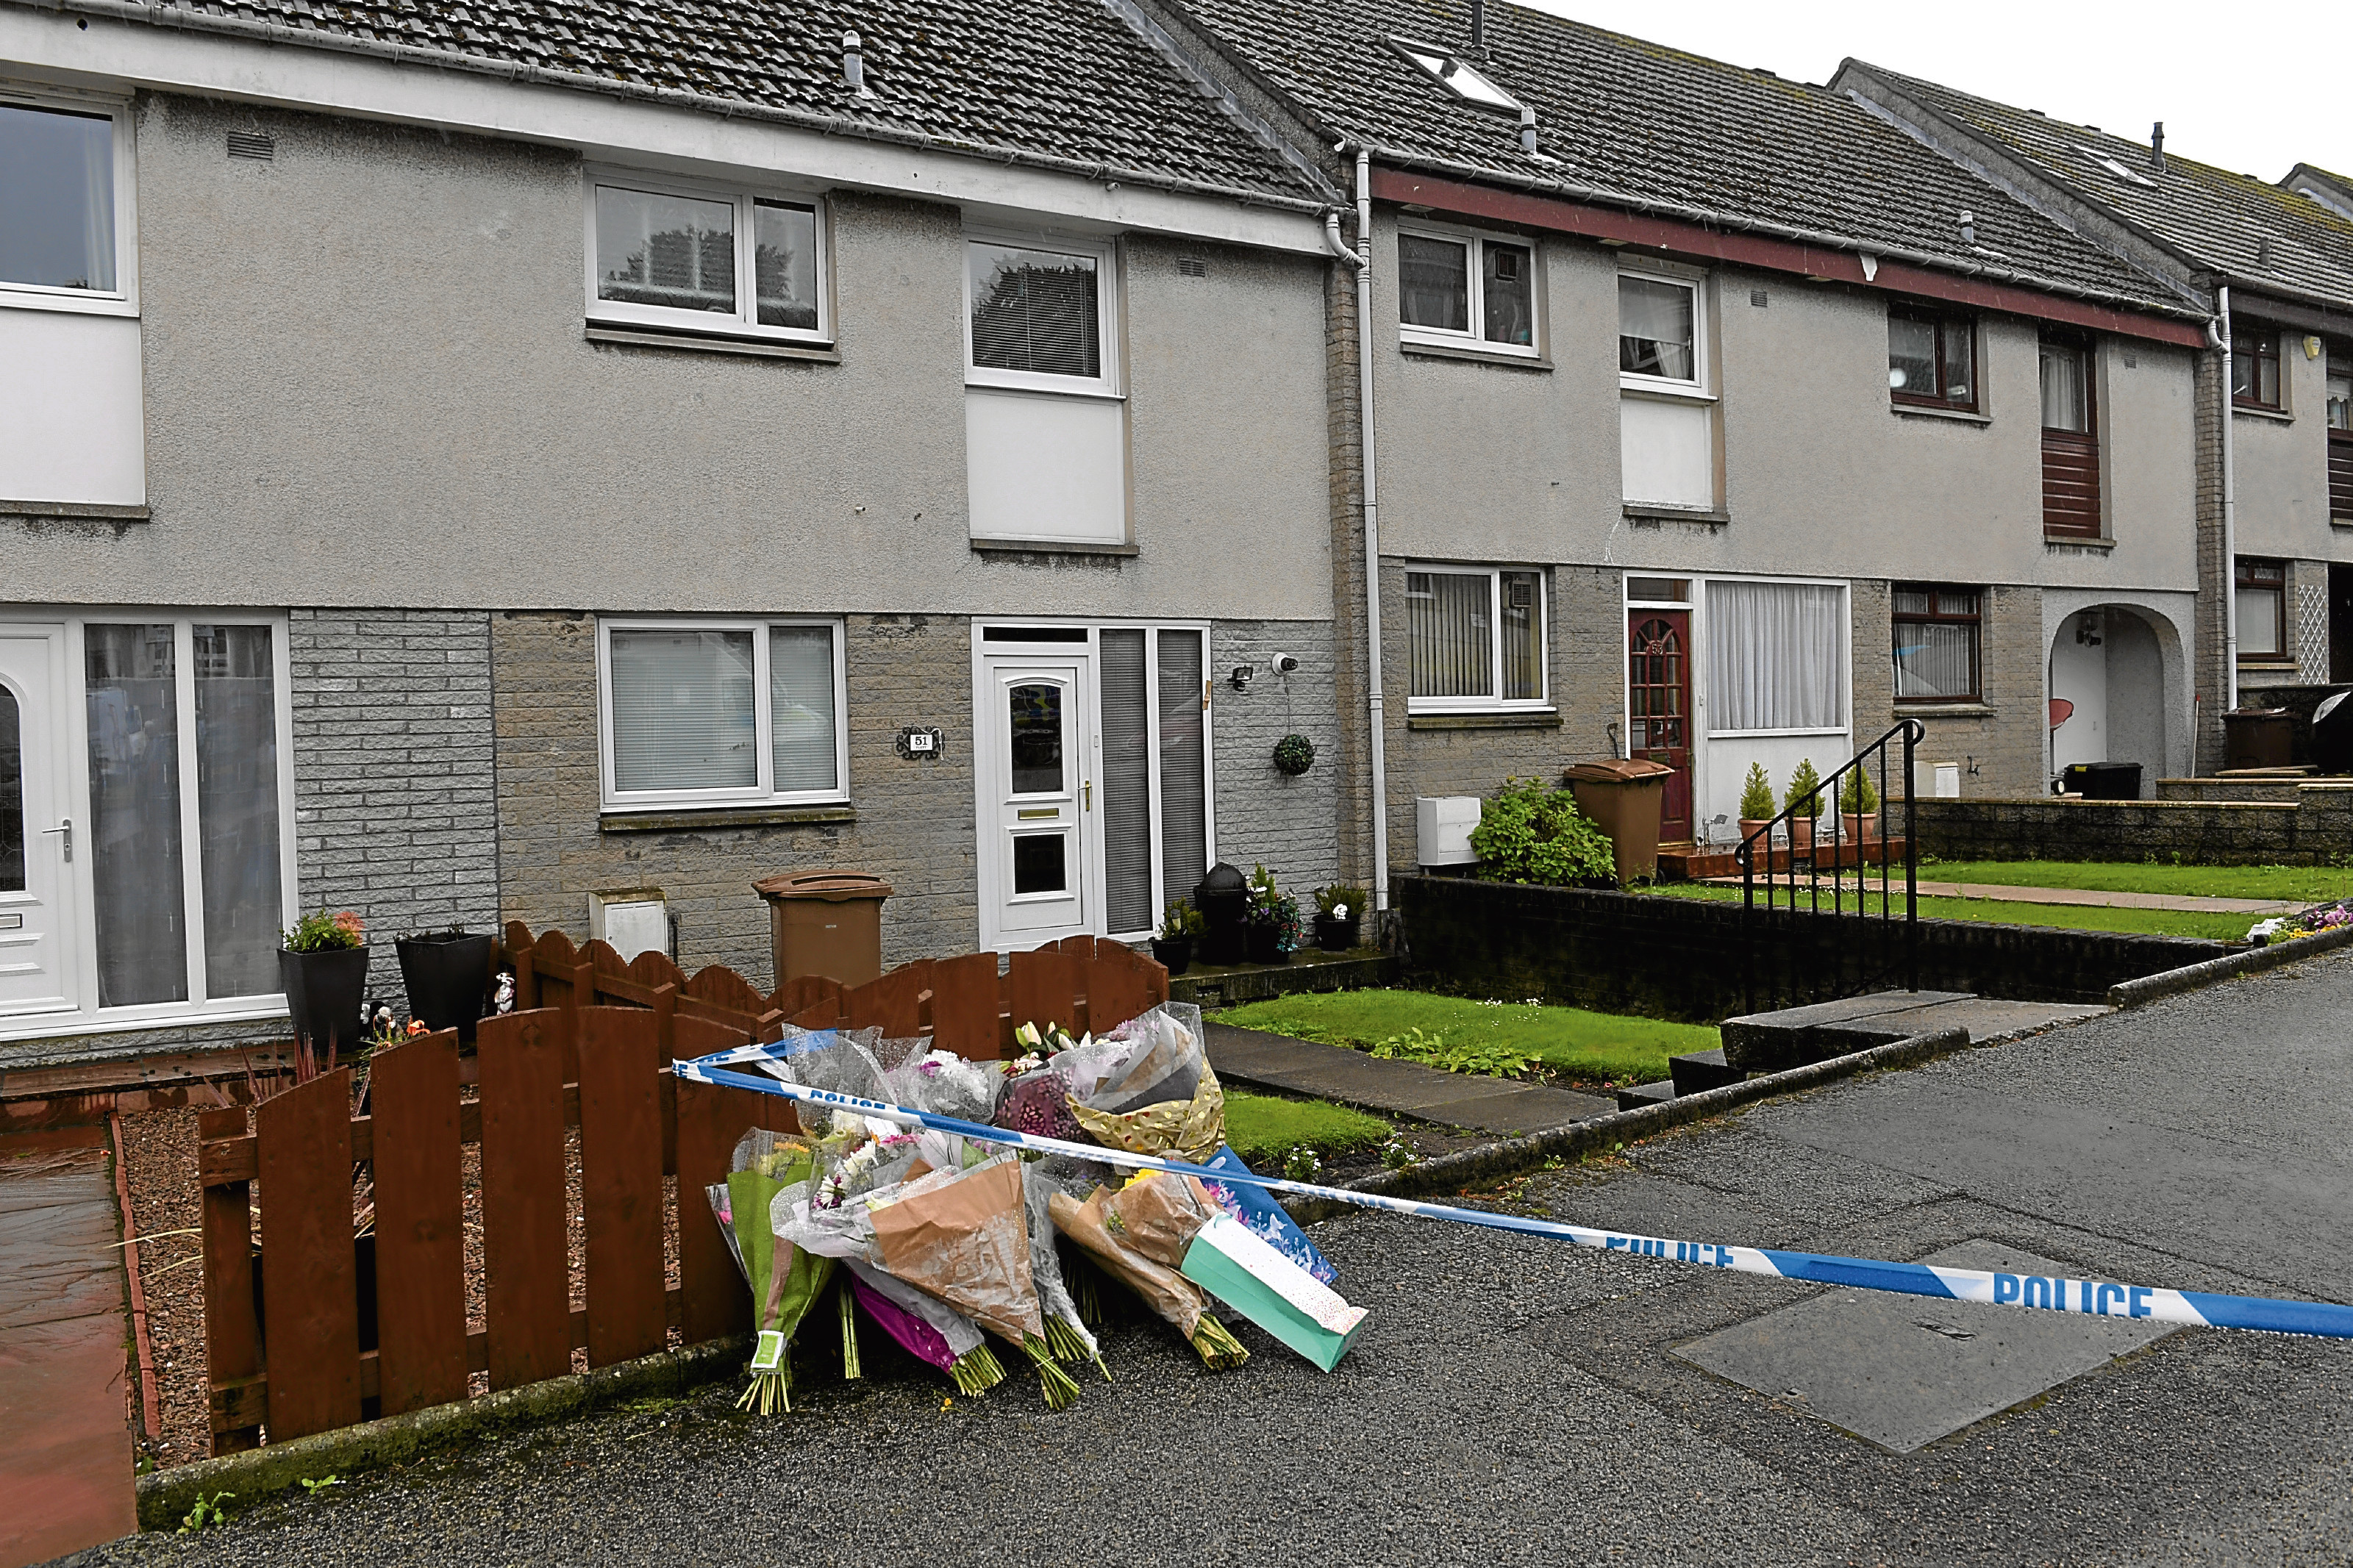 Floral tributes outside the house in Cornhill Terrace where two people died last week